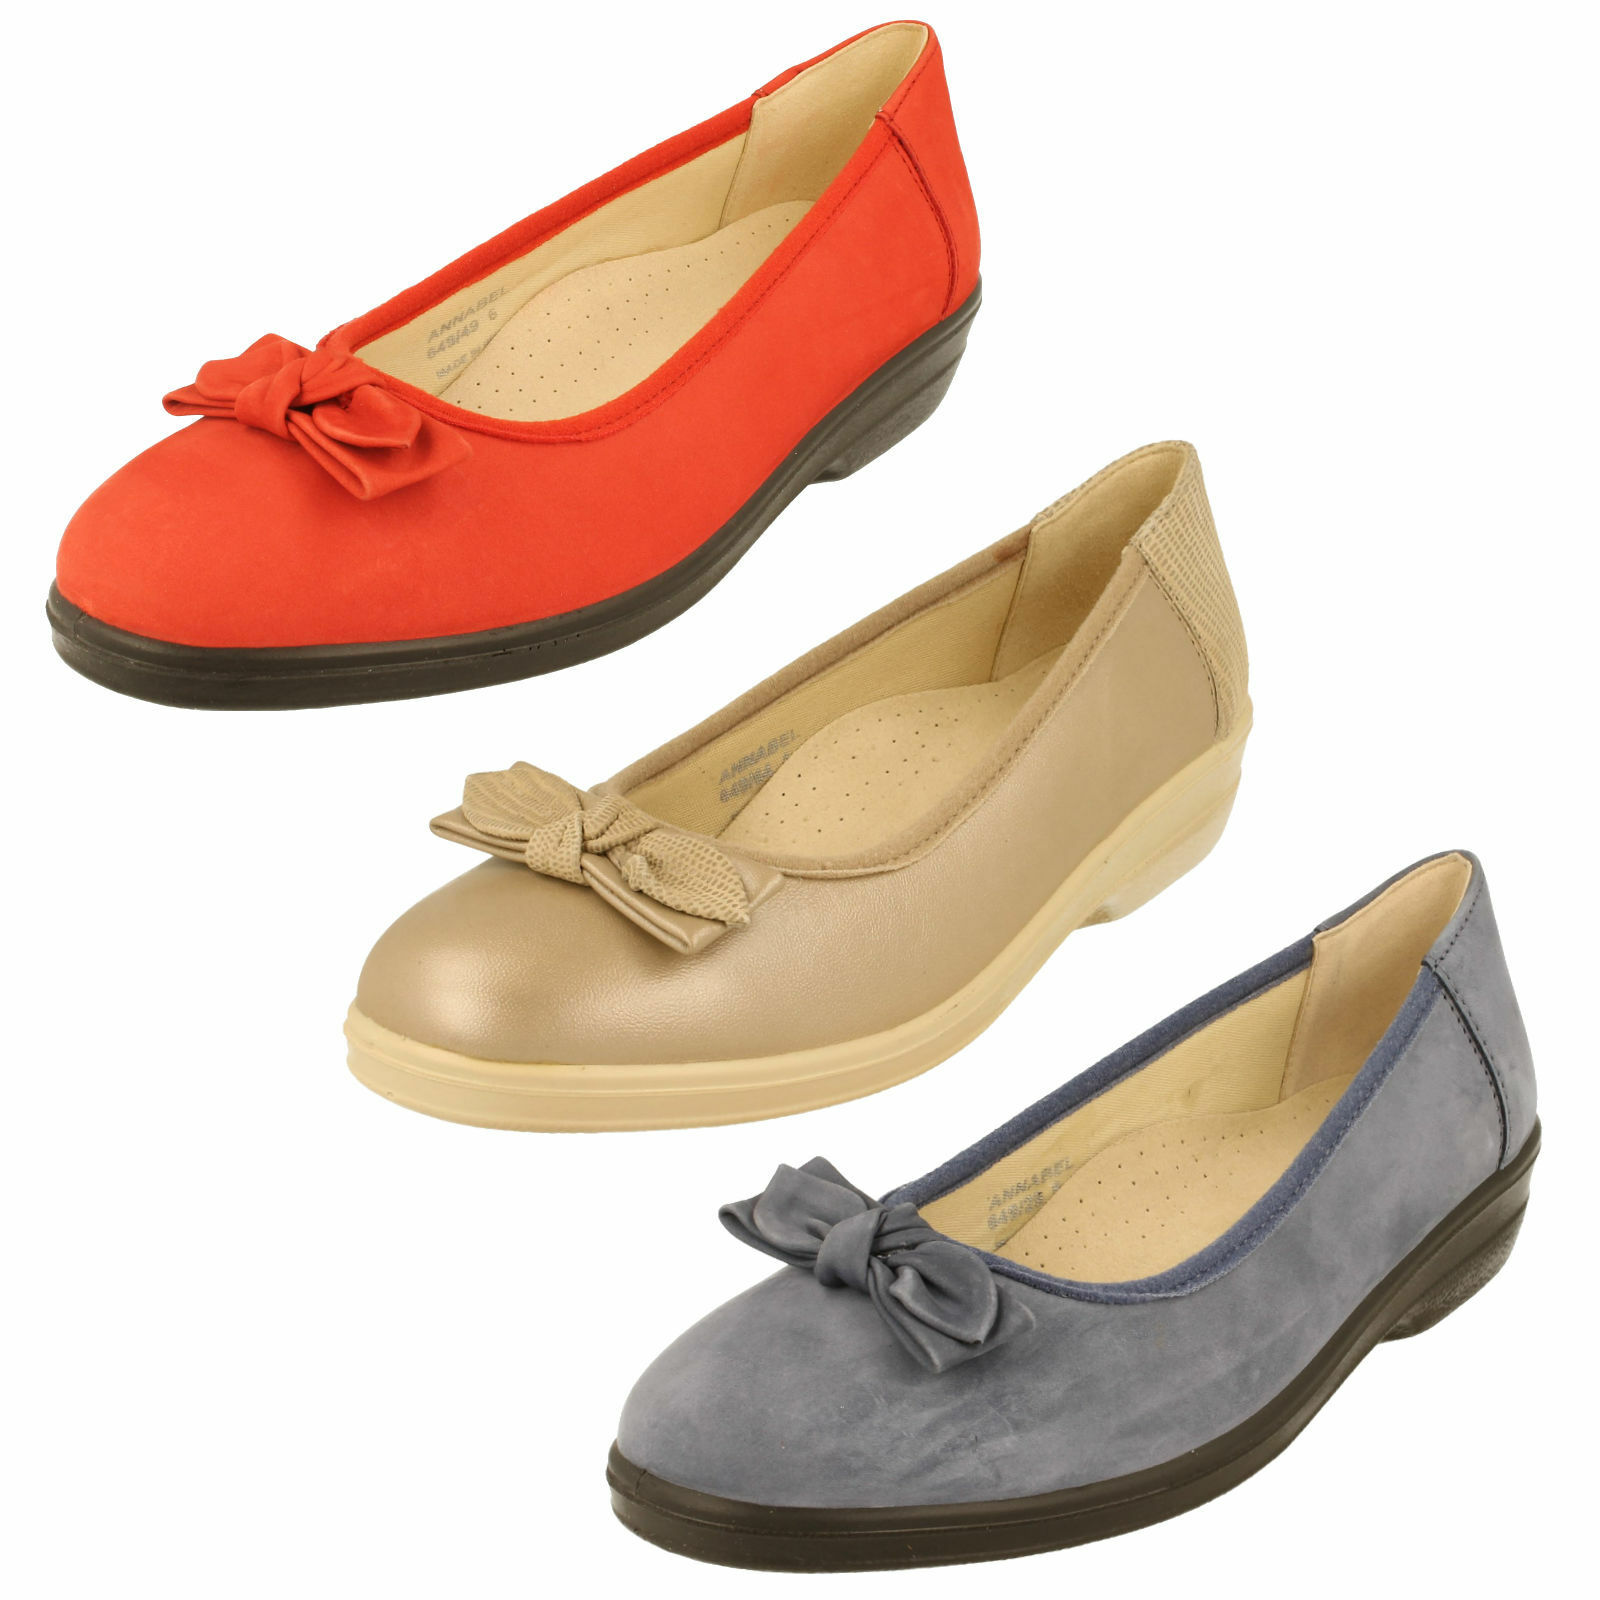 LADIES PADDERS EE FITTING BALLET PUMPS - ANNABEL